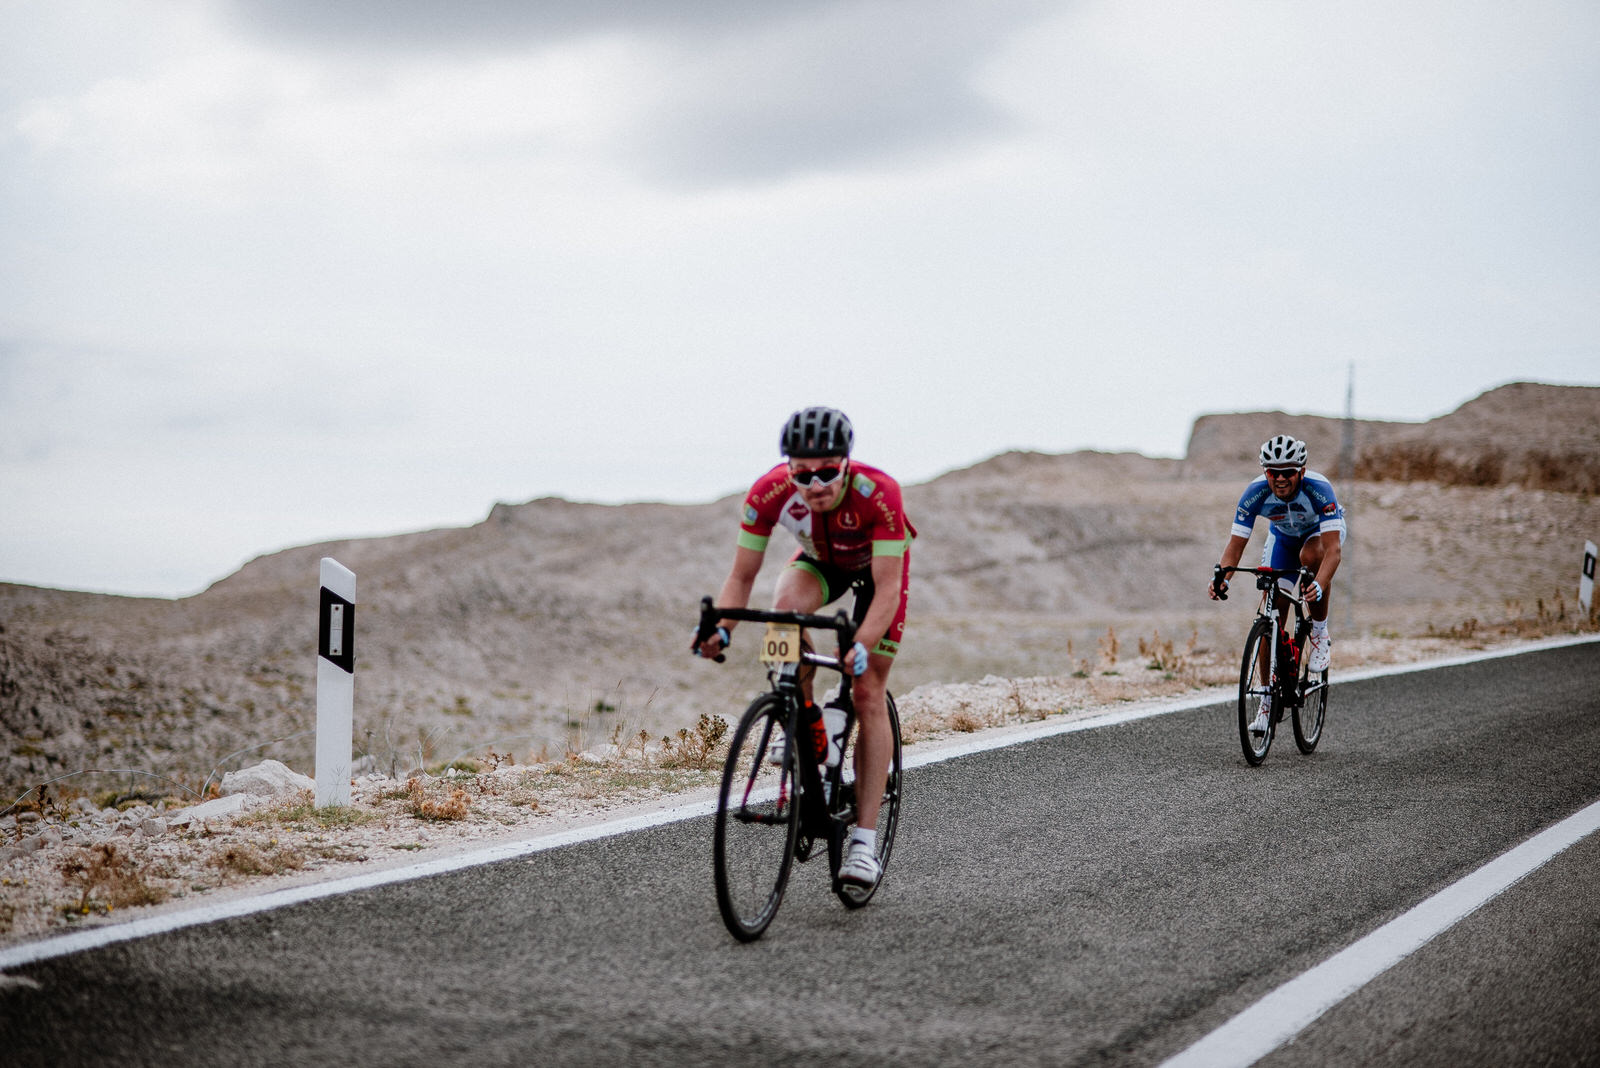 likaclub_Granfondo-Pag-–-Cycling-on-the-Moon_2019-19